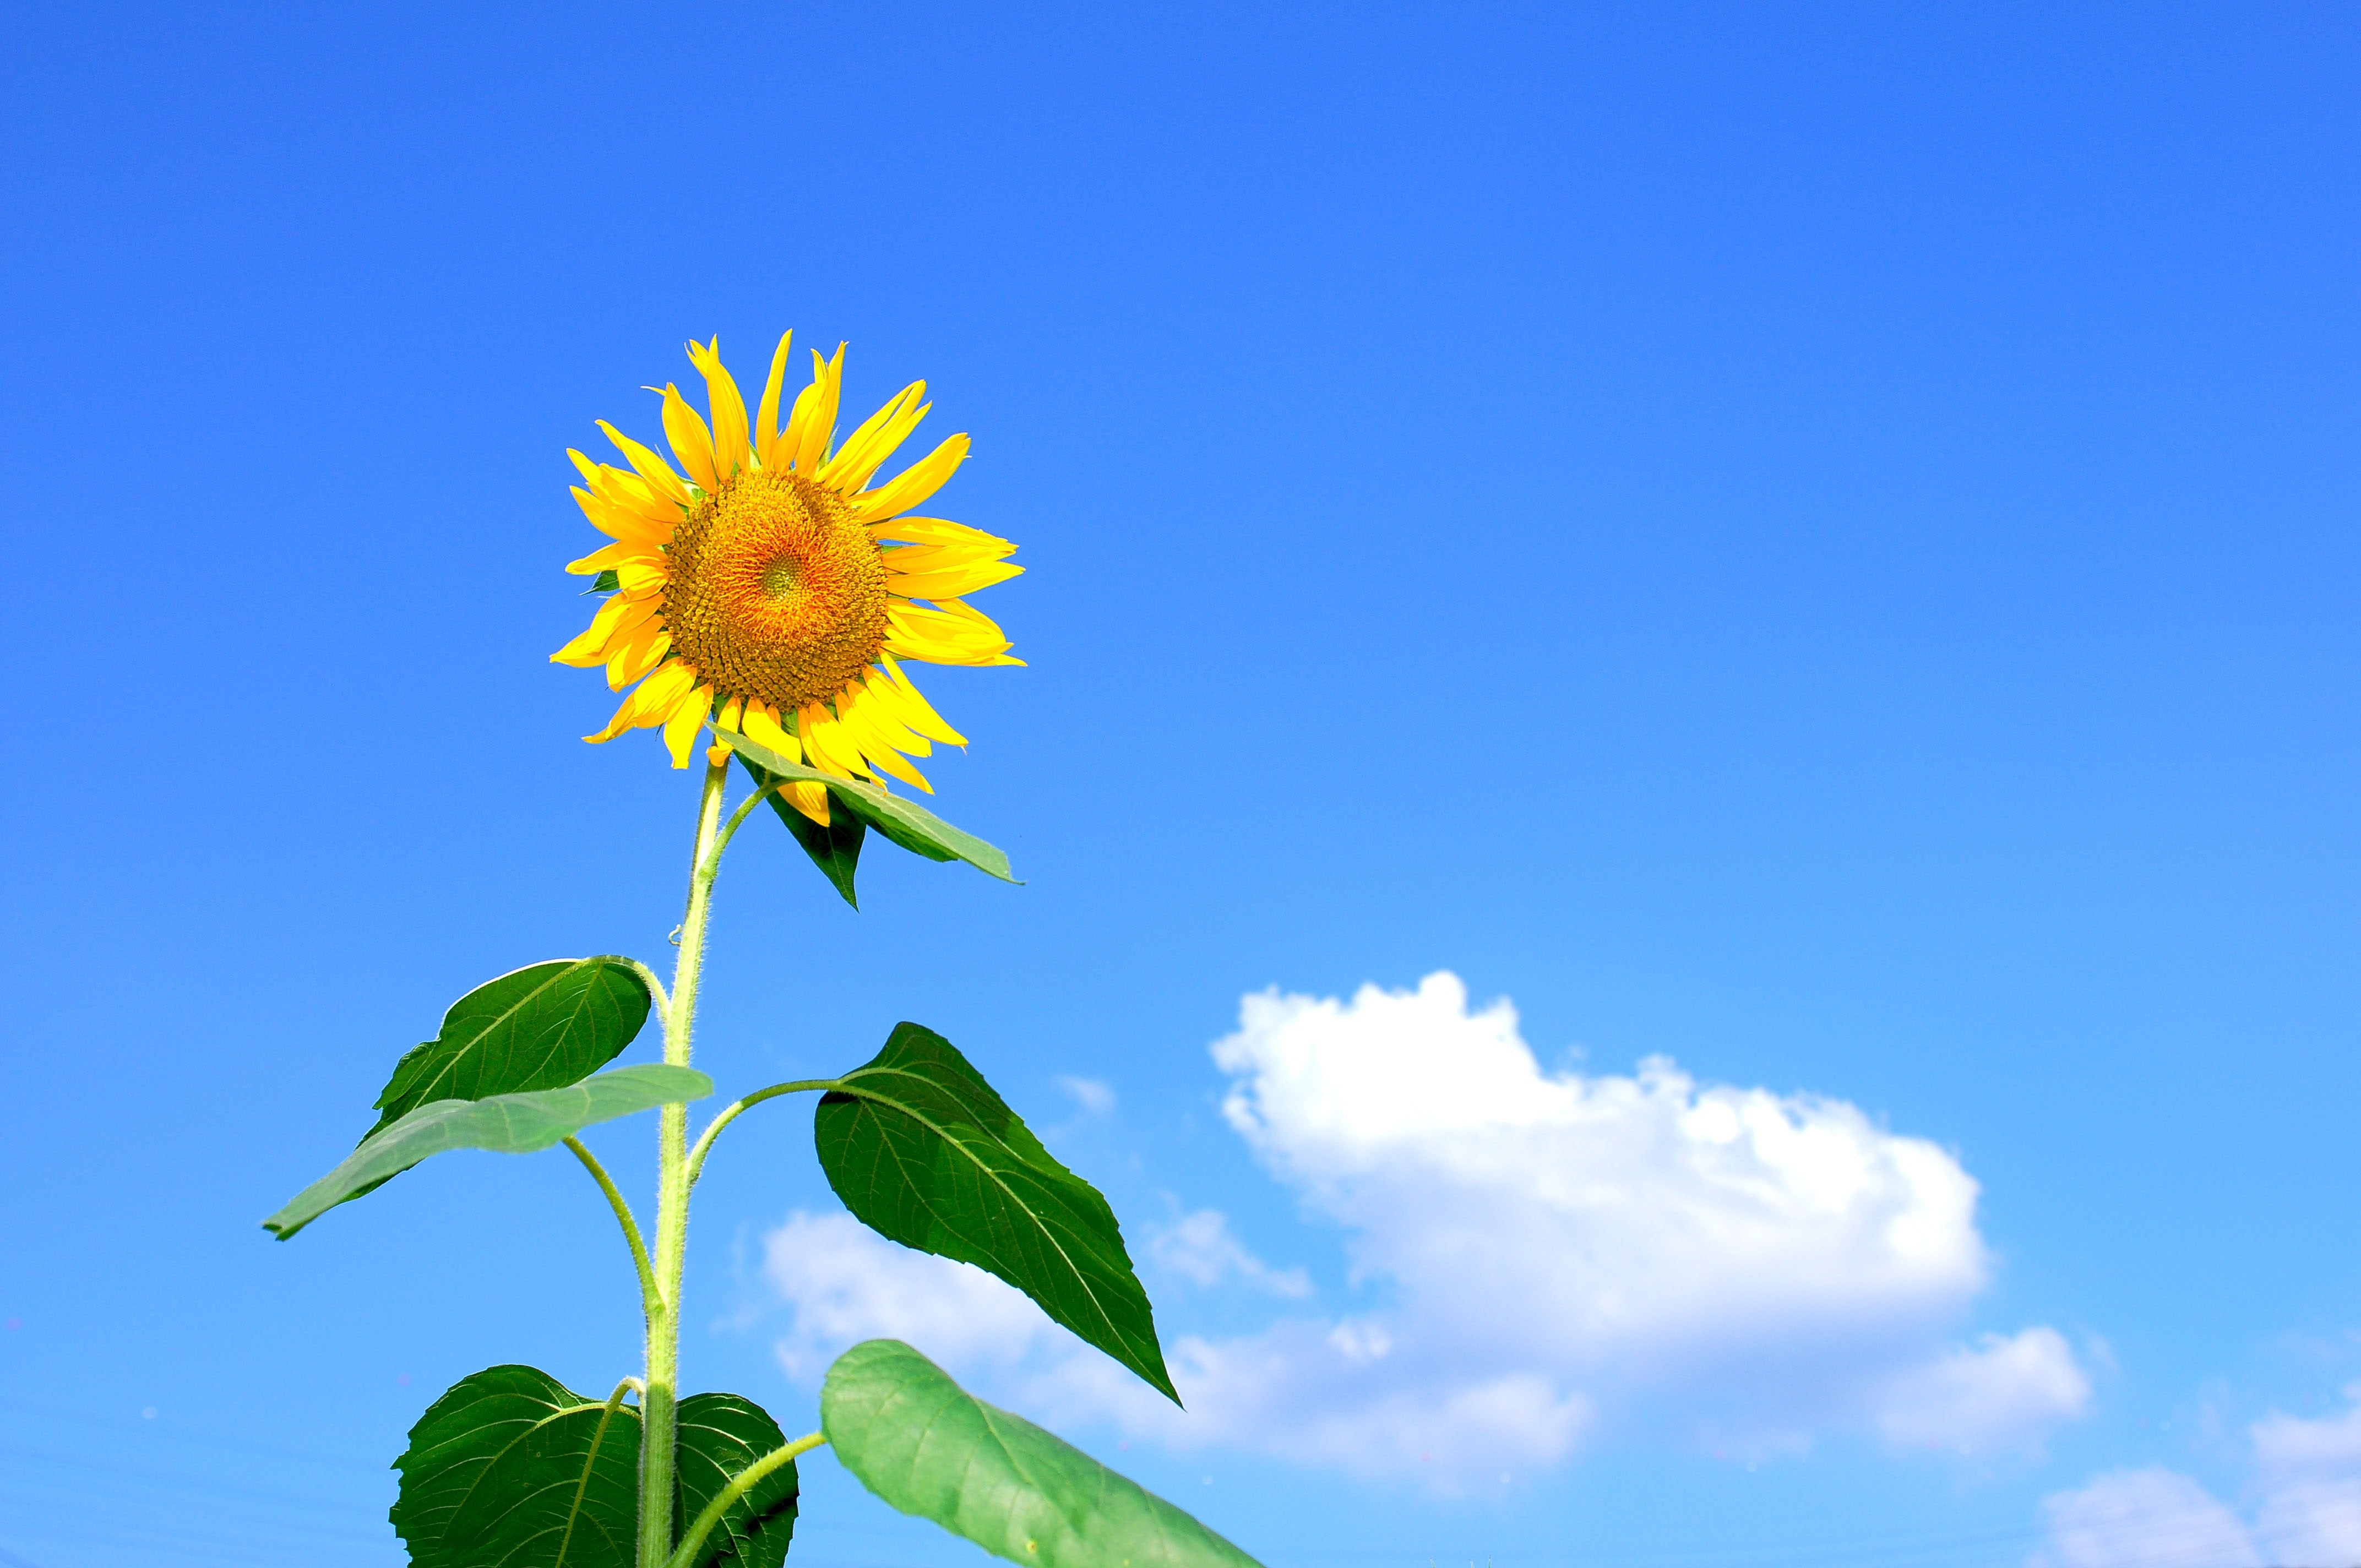 Sunflower blooming during daytime photo